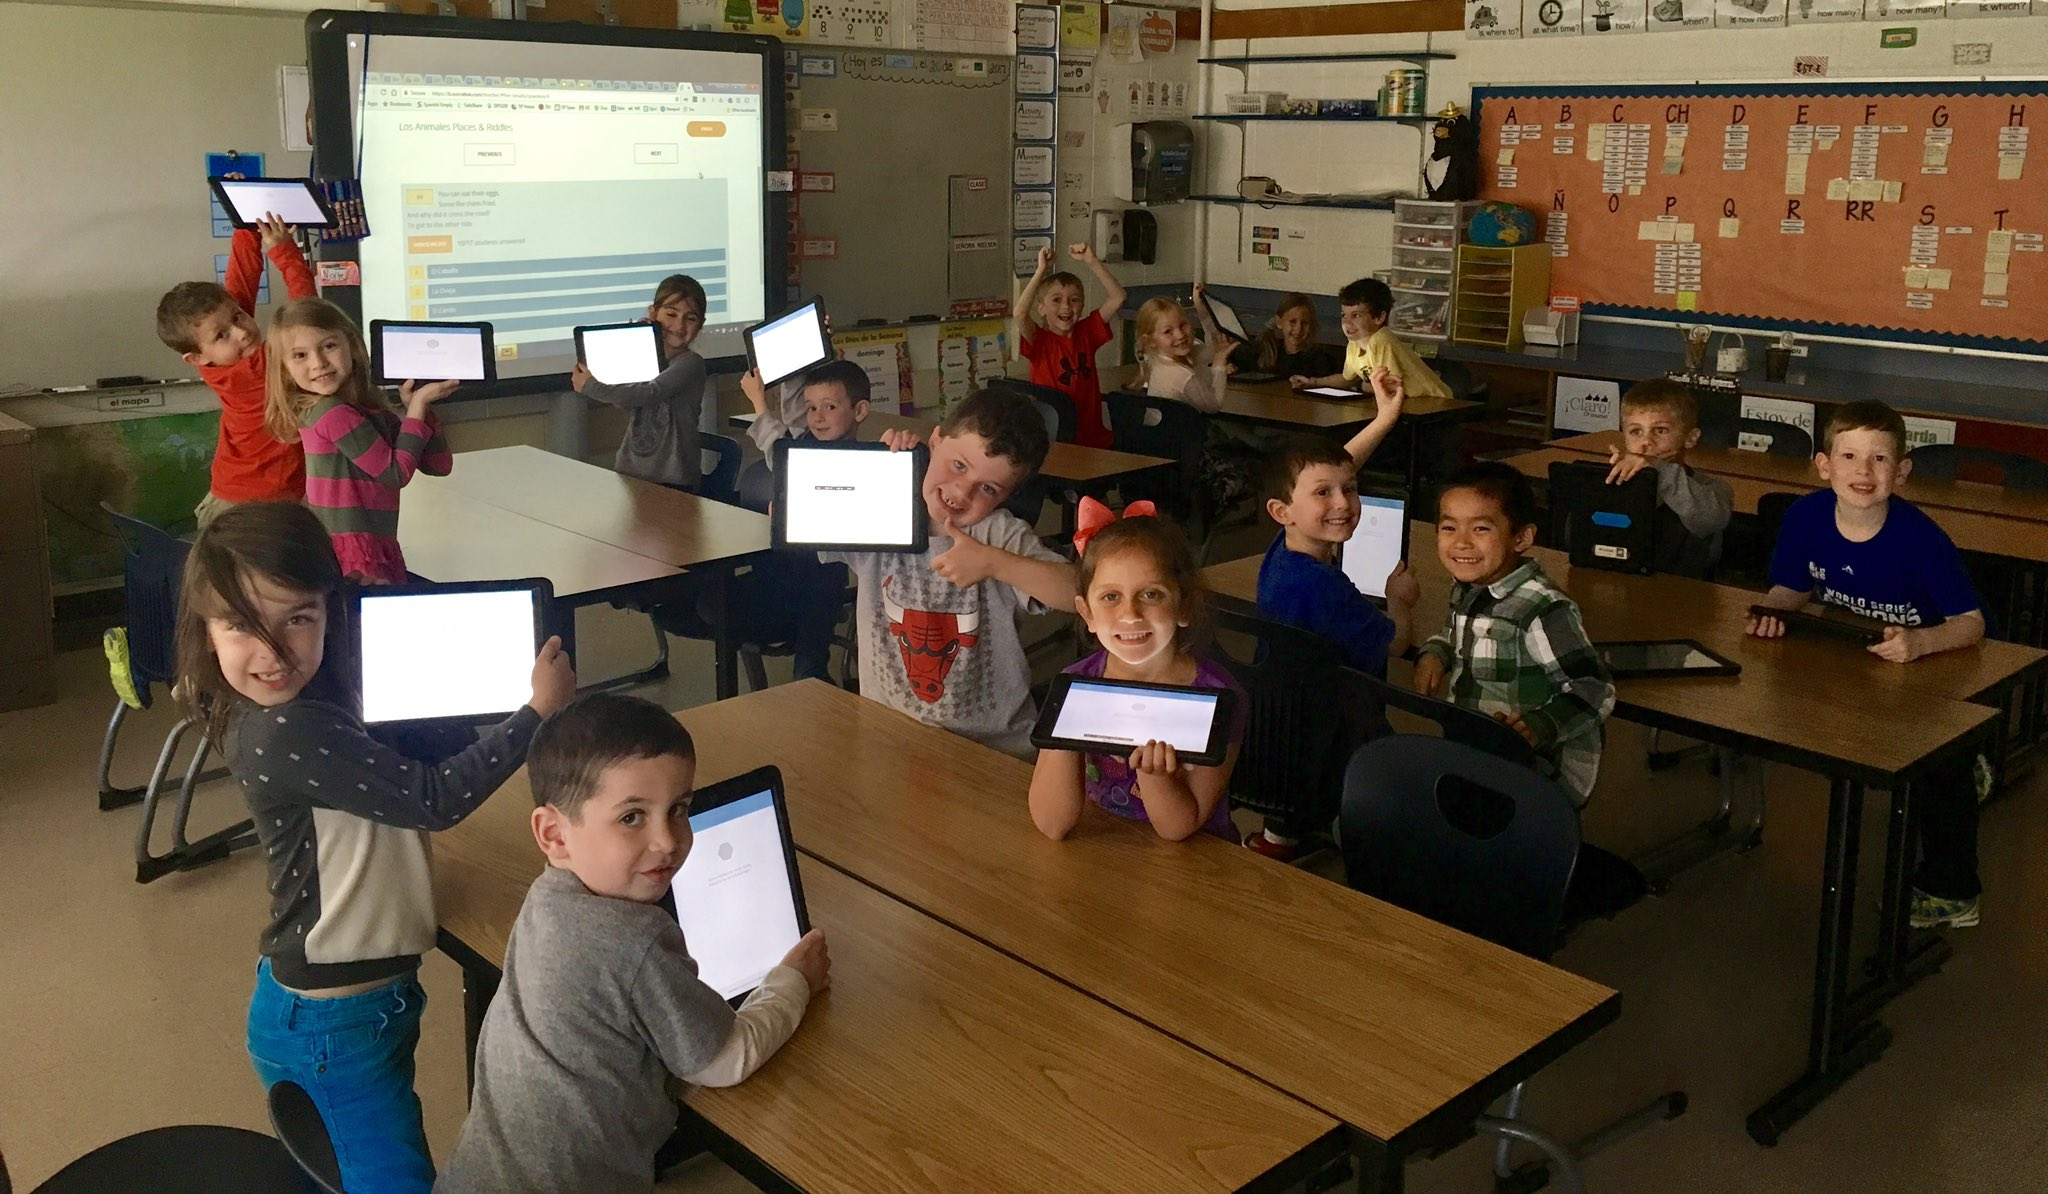 Mrs. Whisler's class had a BLAST solving animal riddles using @Socrative in Spanish today! #sp109 #engage109 https://t.co/fA0VZ5kIYP